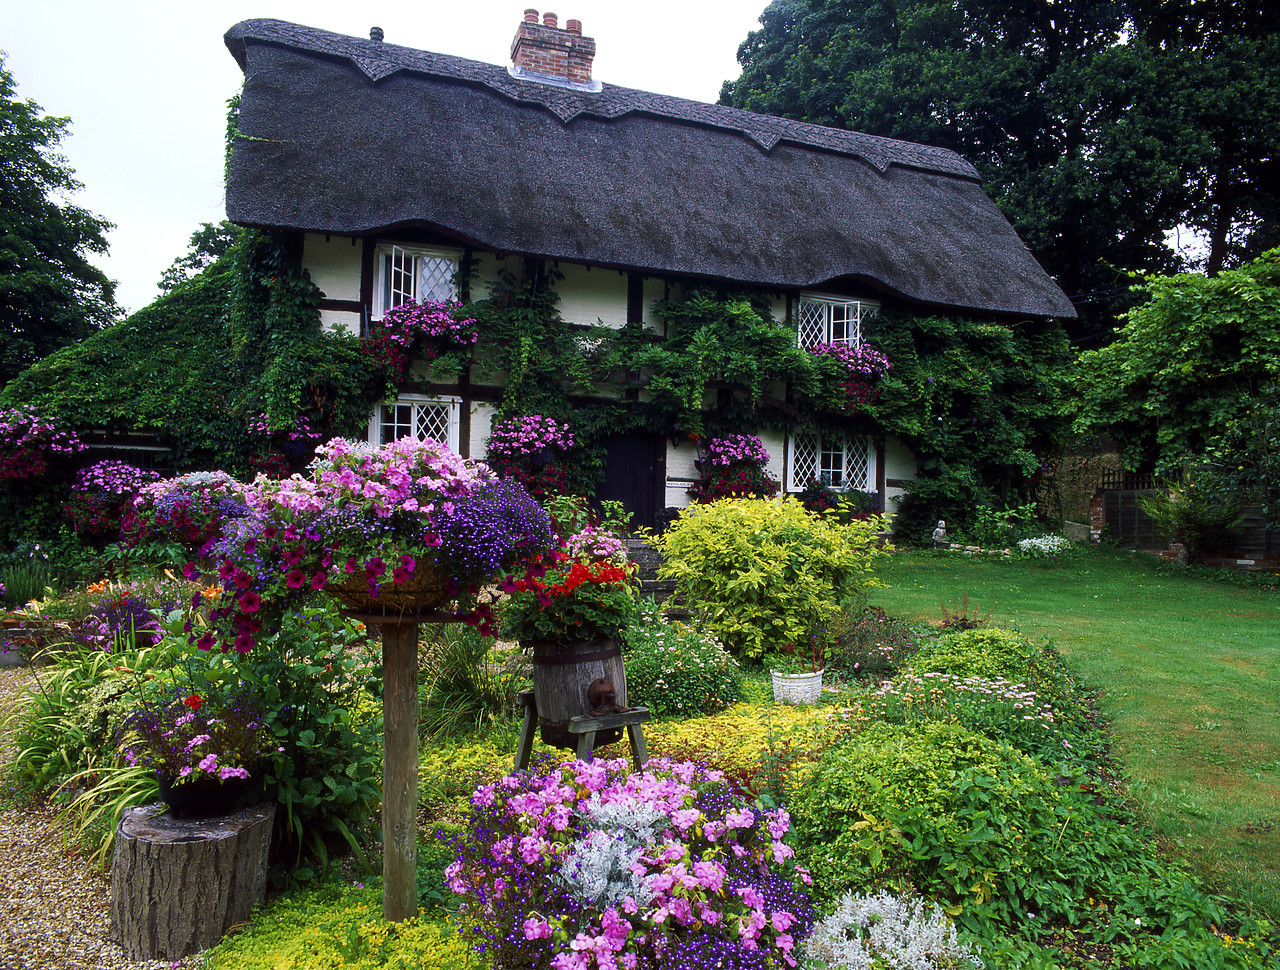 #990502-4 - 11th Century Thatched Farmhouse, Lymington, Hampshire, England